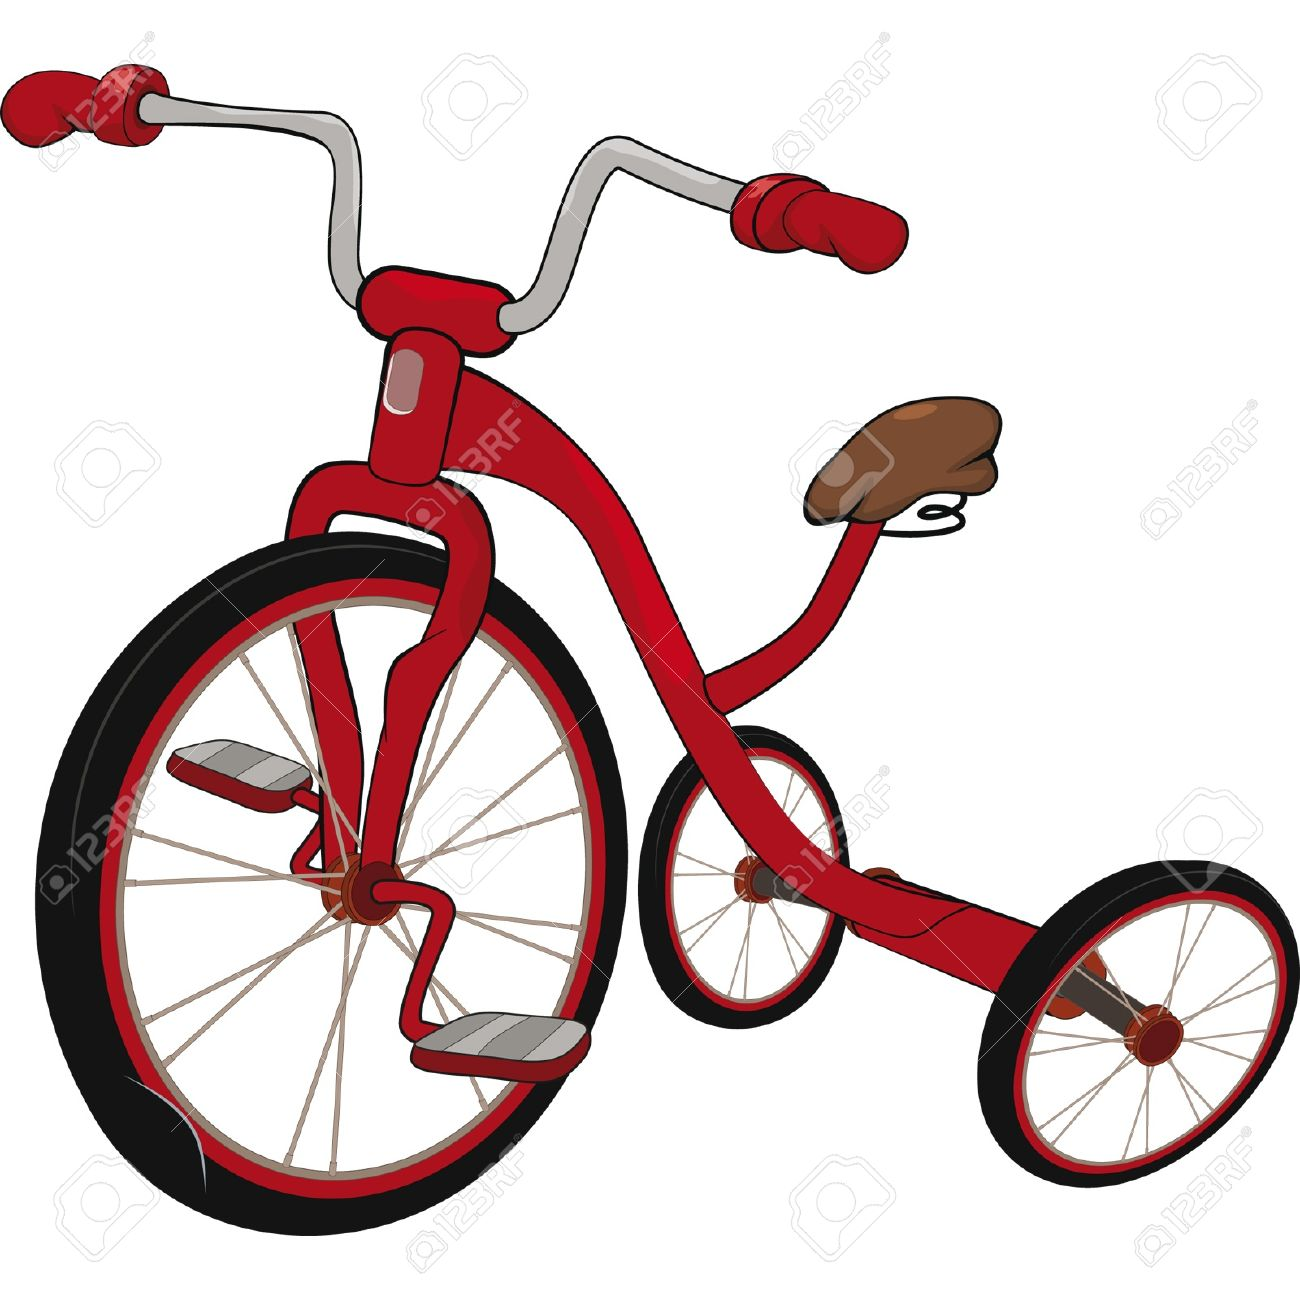 Clipart tricycle 4 » Clipart Station.